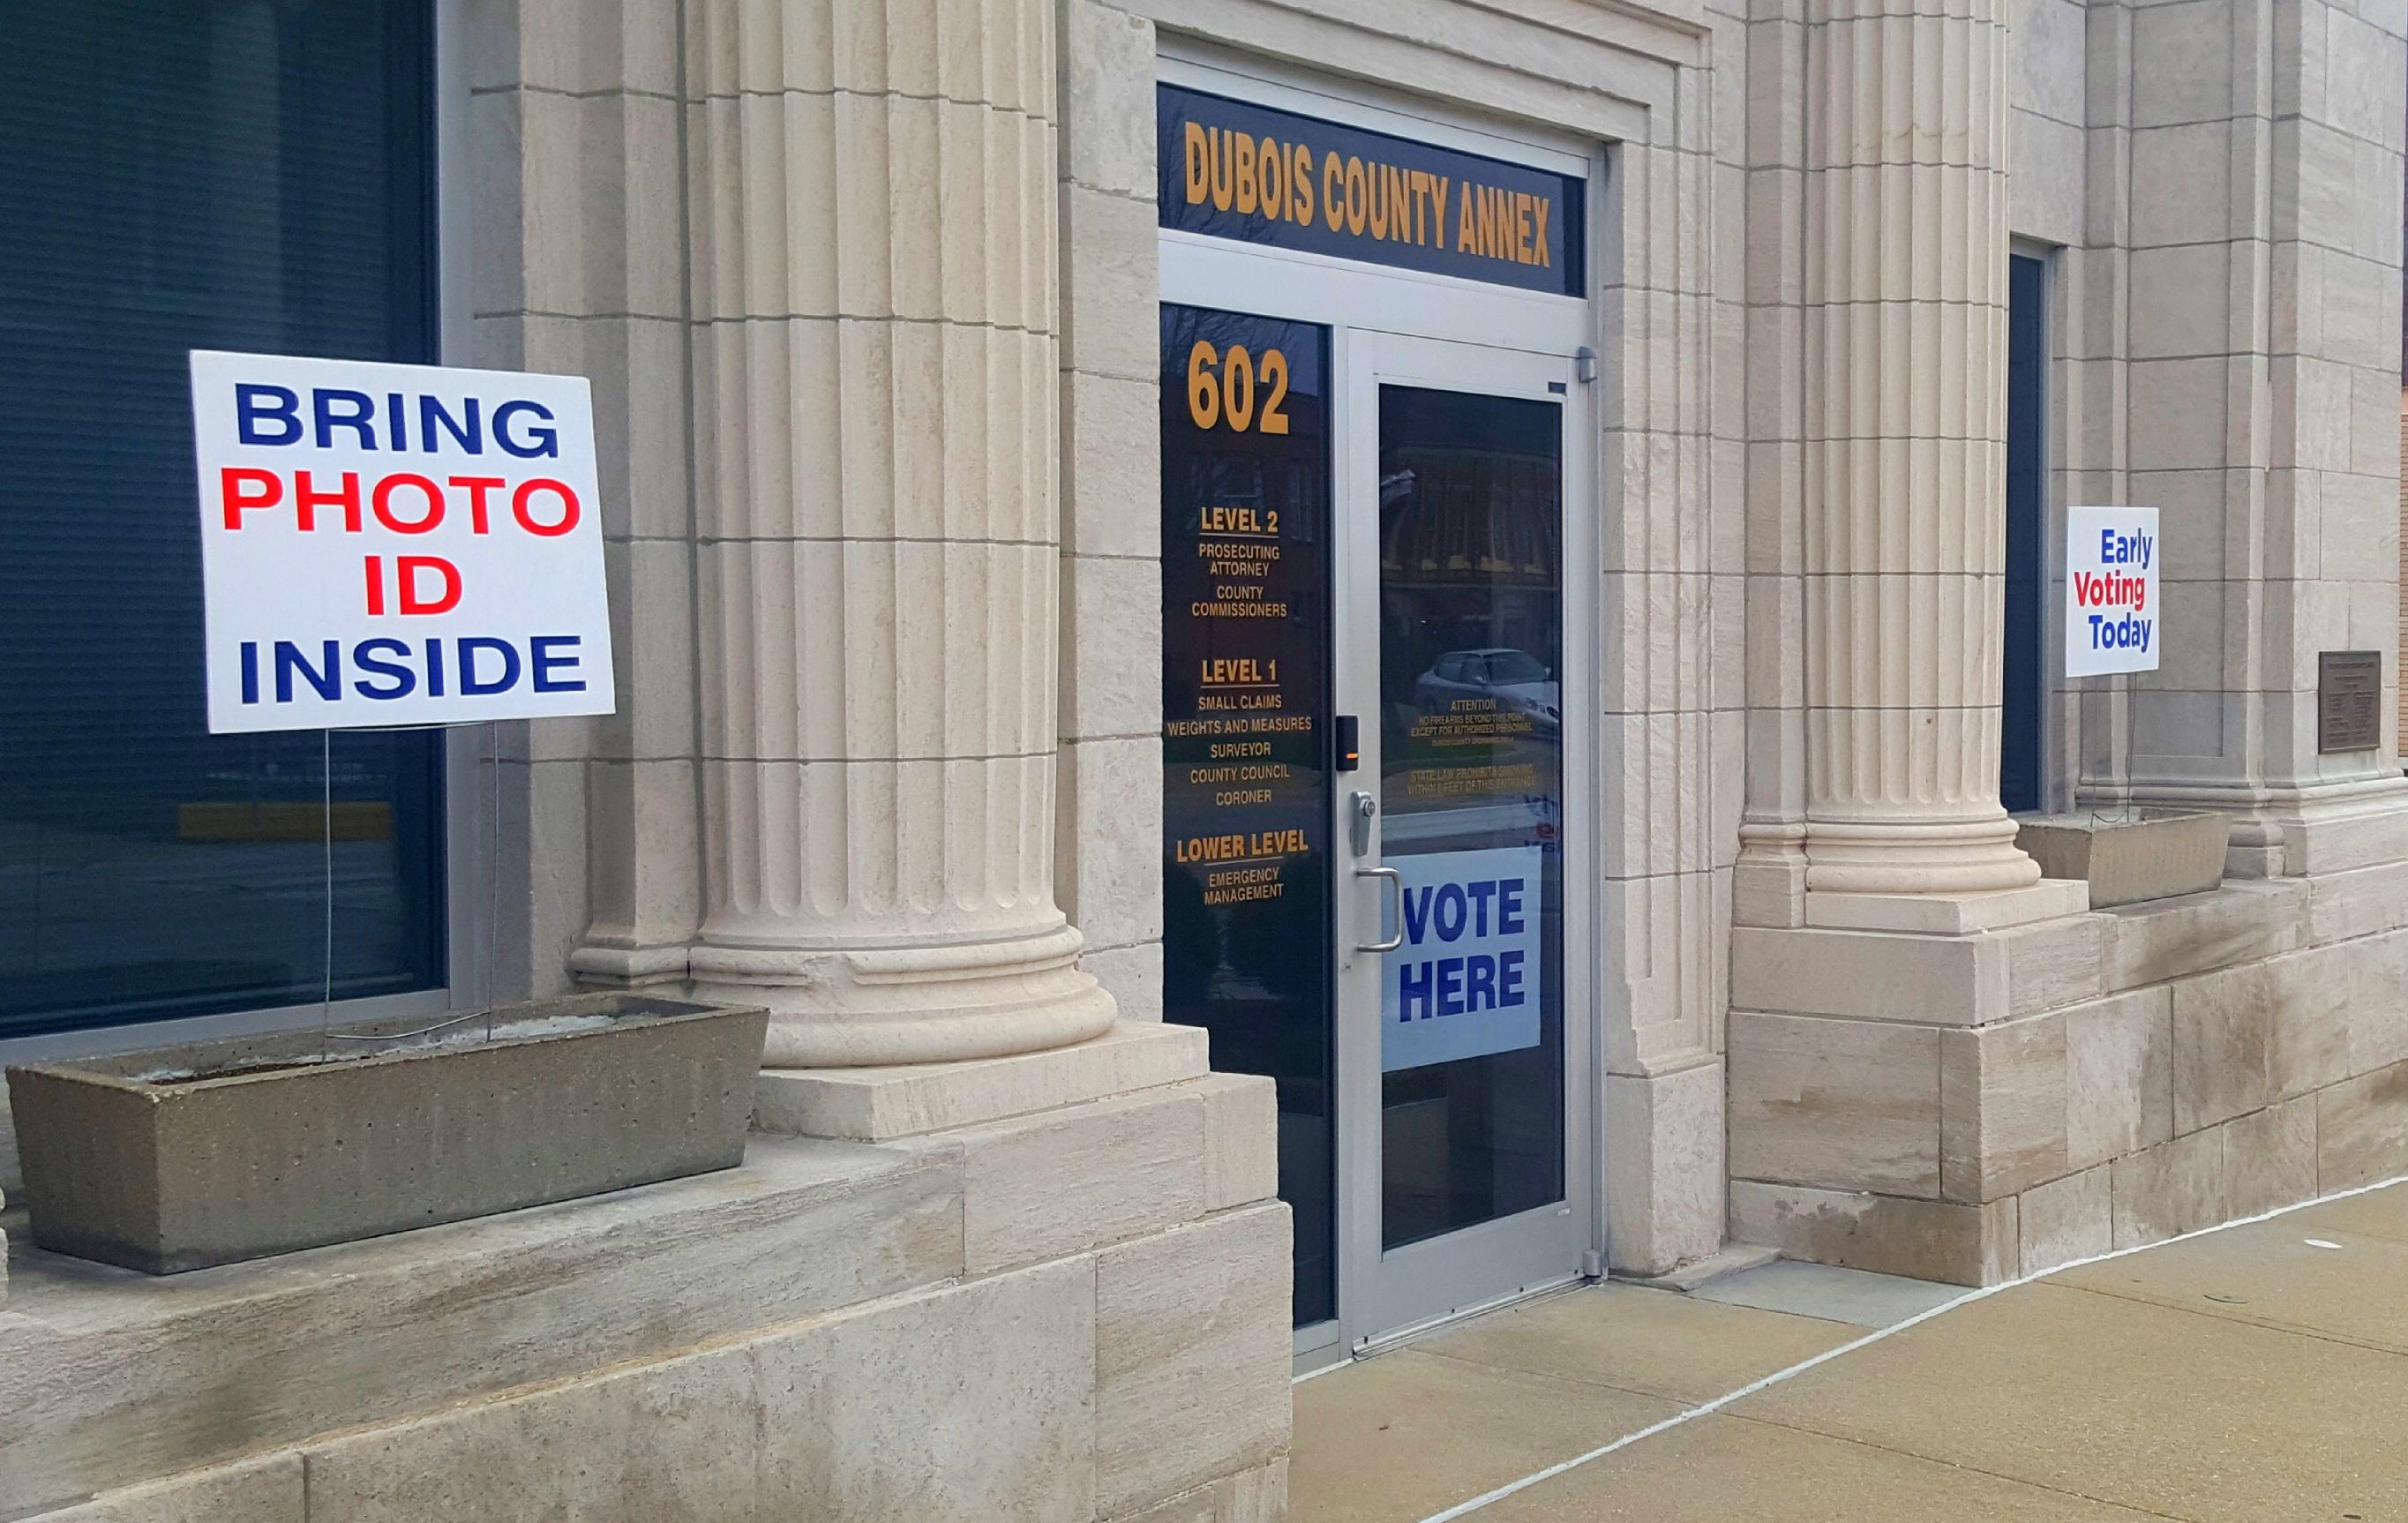 ELECTION 2020 VOTER GUIDE: Early Voting Begins Tuesday in Dubois County